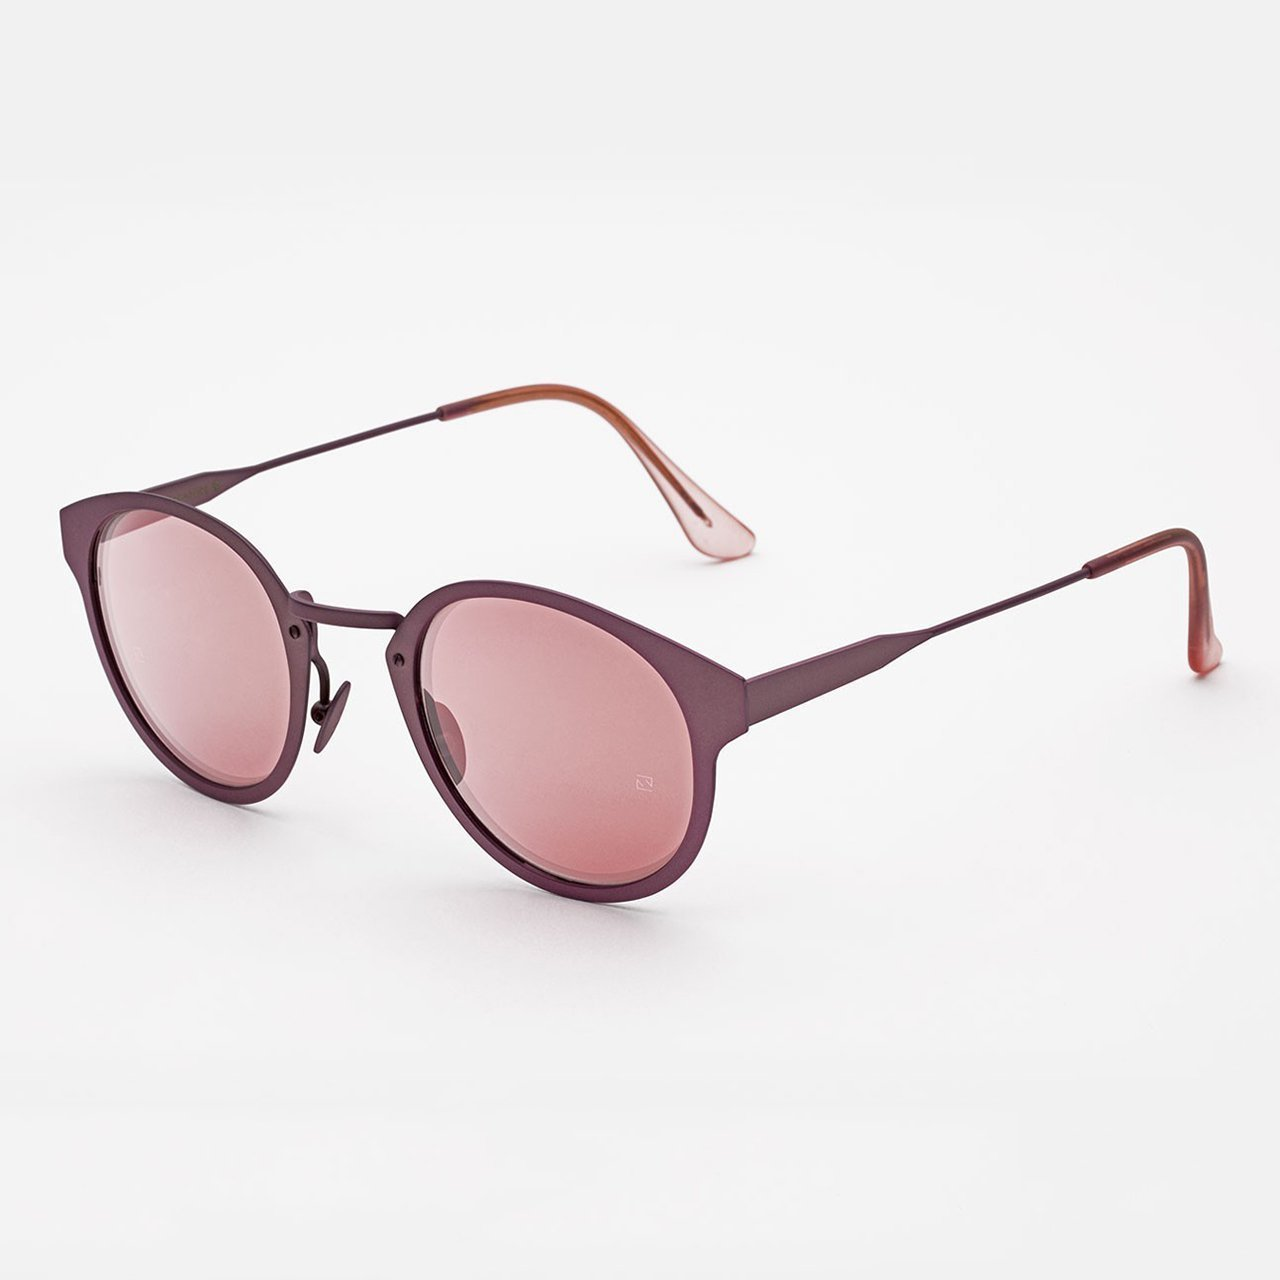 80c1280b7f34 Super Sunglasses Women's Panama Synthesis Sunglasses, Pink/Pink, One Size:  Amazon.ca: Clothing & Accessories